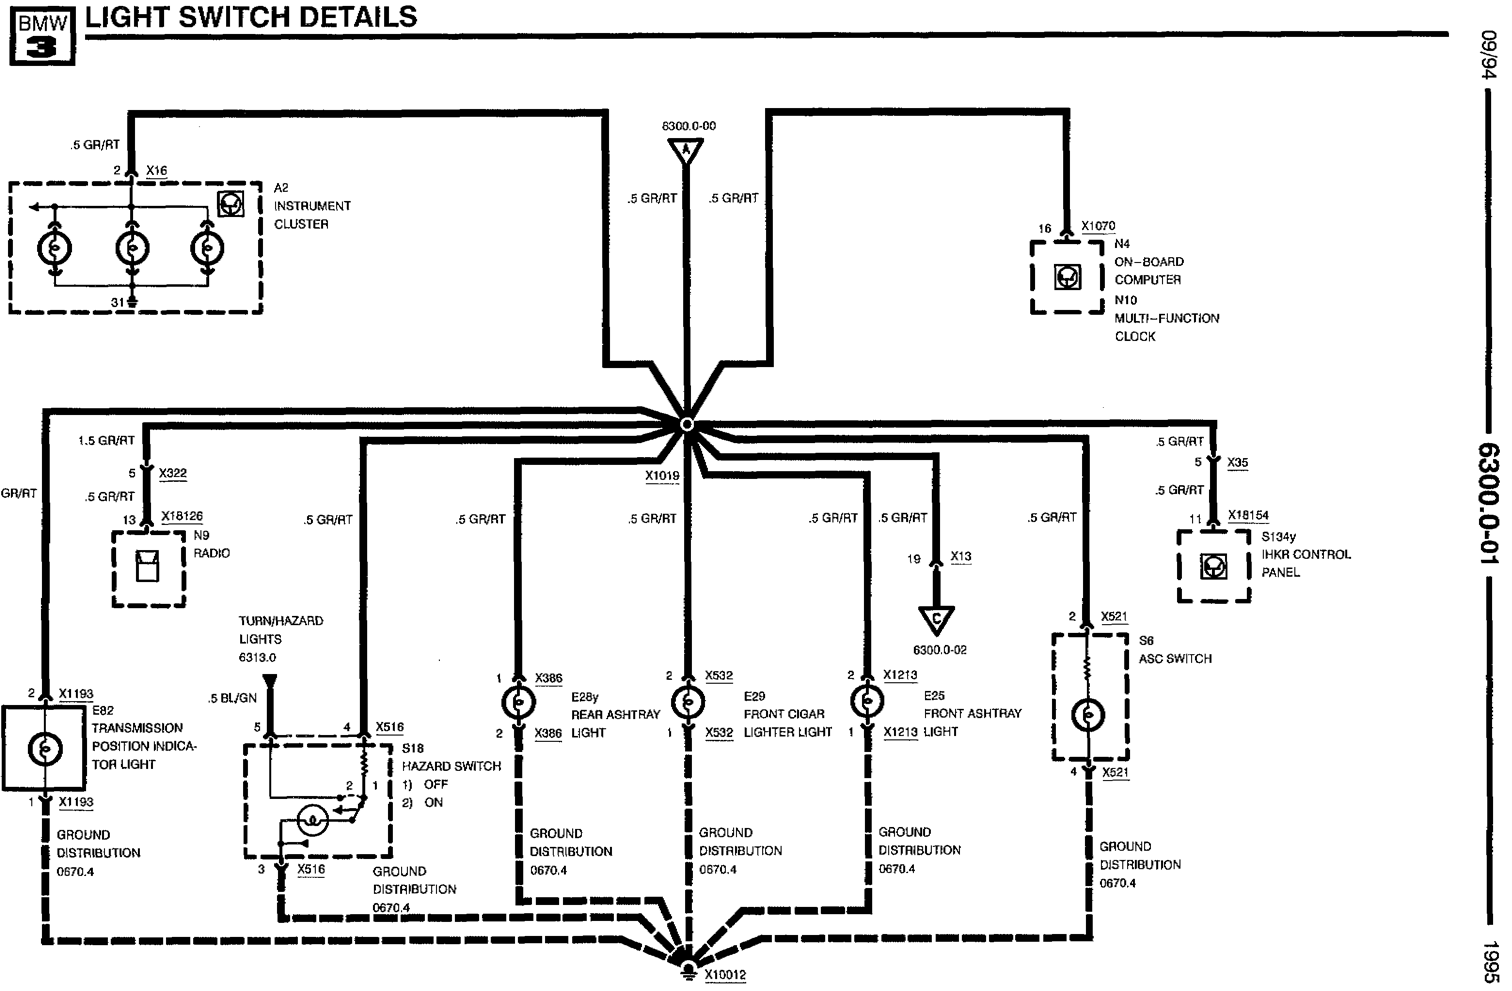 dimmer switch wiring diagram the dimmer switch would be